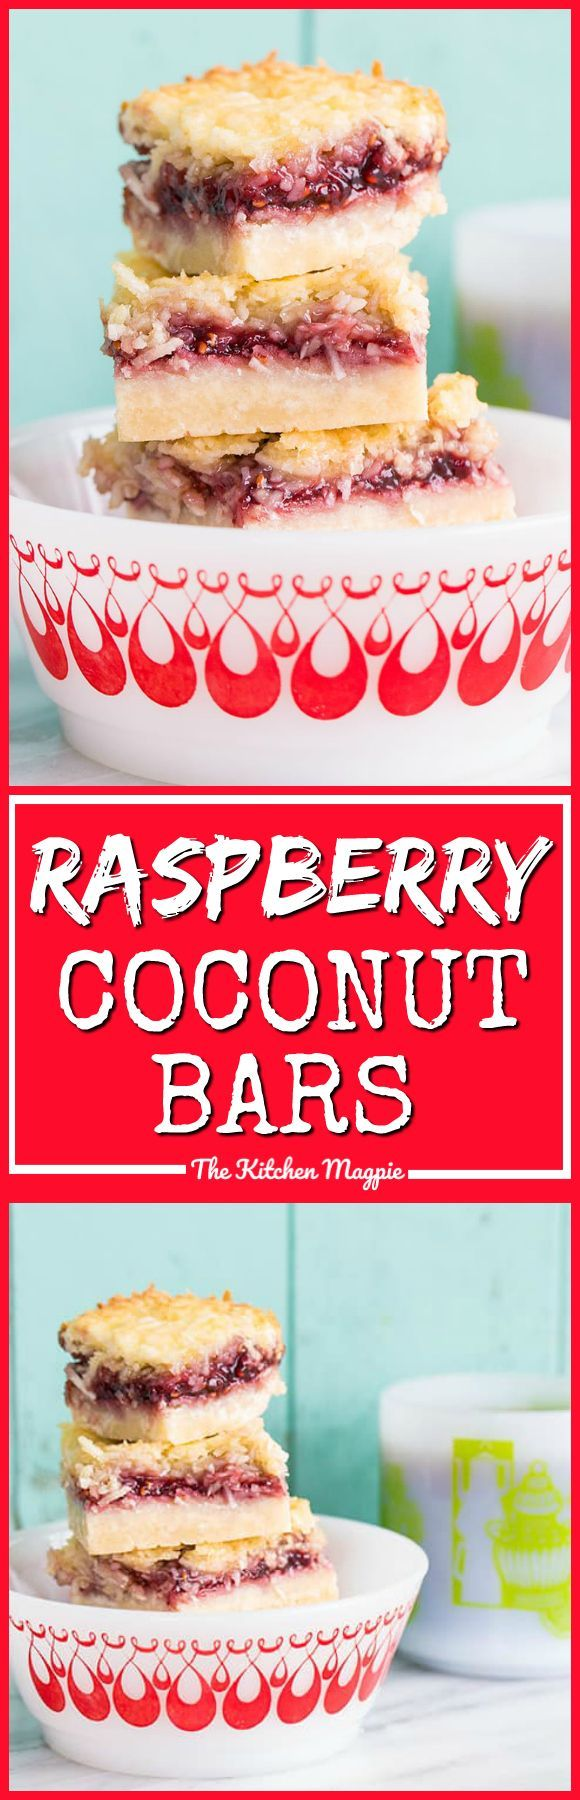 Raspberry Coconut Bars, the perfect bar recipe! It freezes well and tastes amazing! Recipe from @kitchenmagpie #dessert #christmas #coconut #recipe